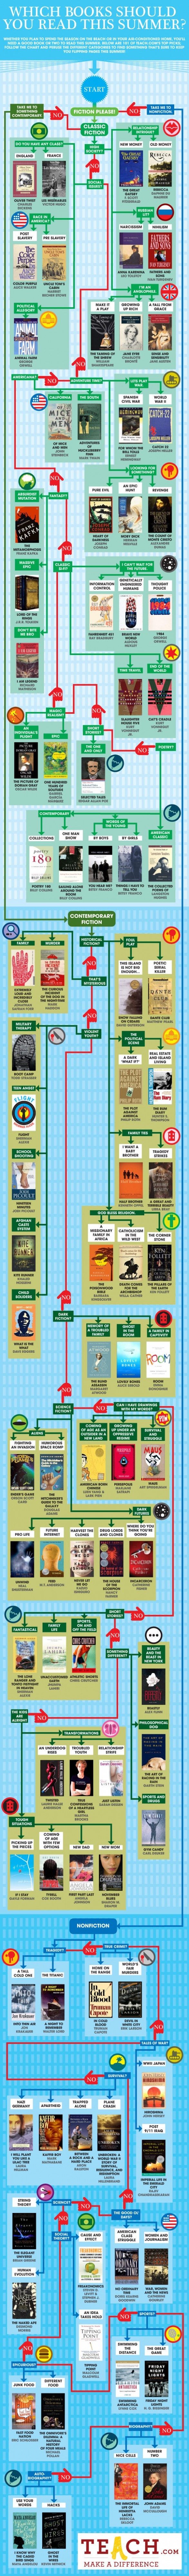 SummerReadingFlowchartWhatShouldYouReadOnYourBreak_4fd11b22570cf_w587.jpg (587×7990)